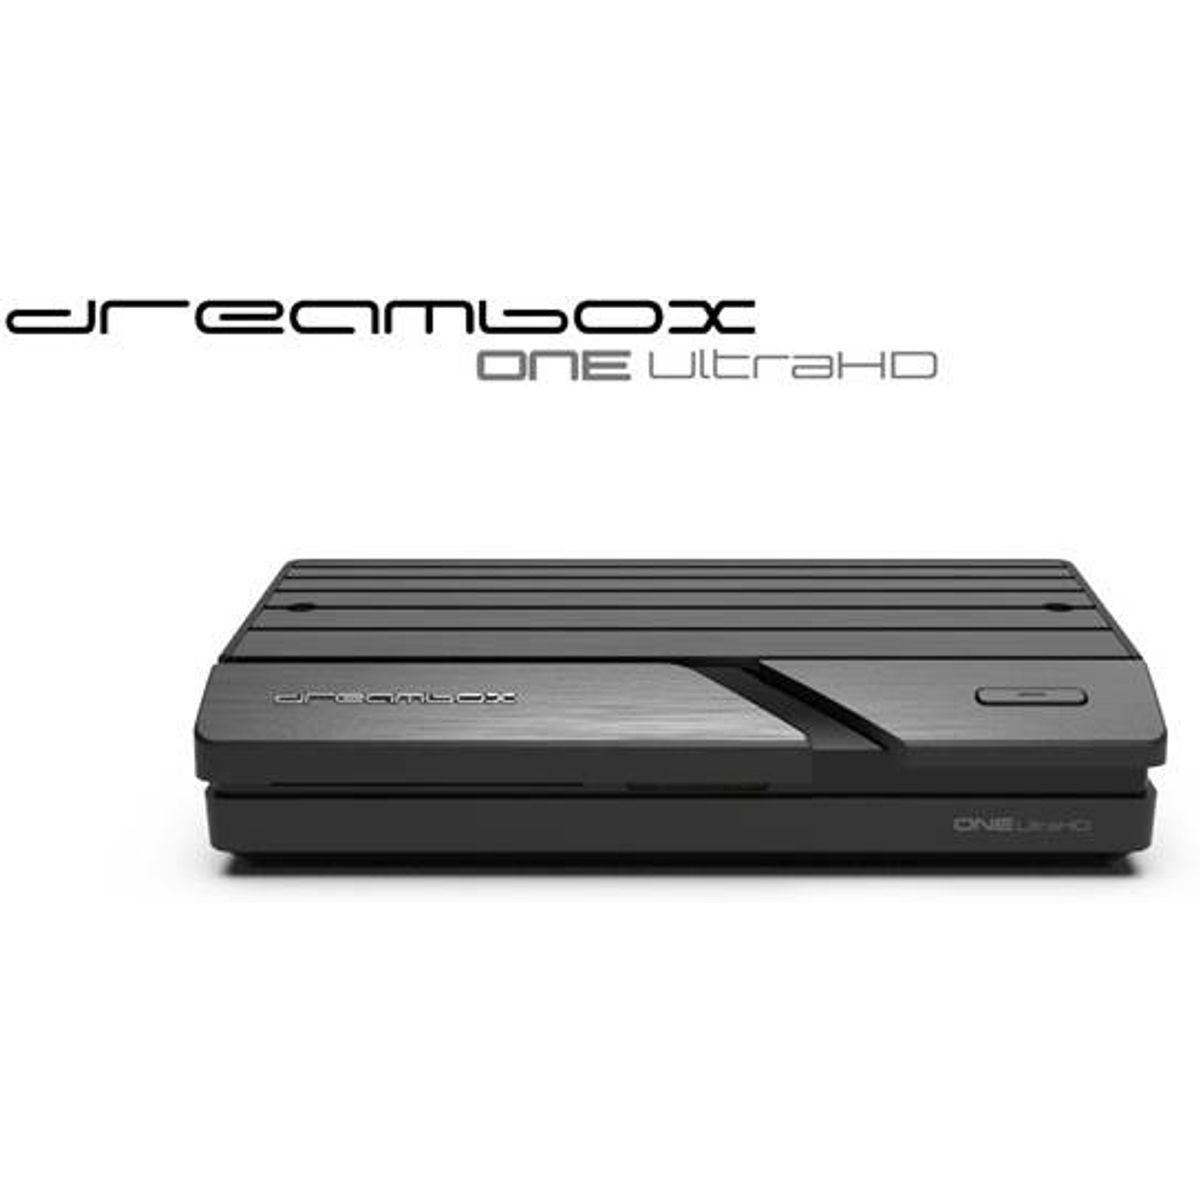 Dreambox One Ultra HD BT Edition 2x DVB-S2X MIS Tuner 4K 2160p E2 Linux Dual Wifi H.265 HEVC